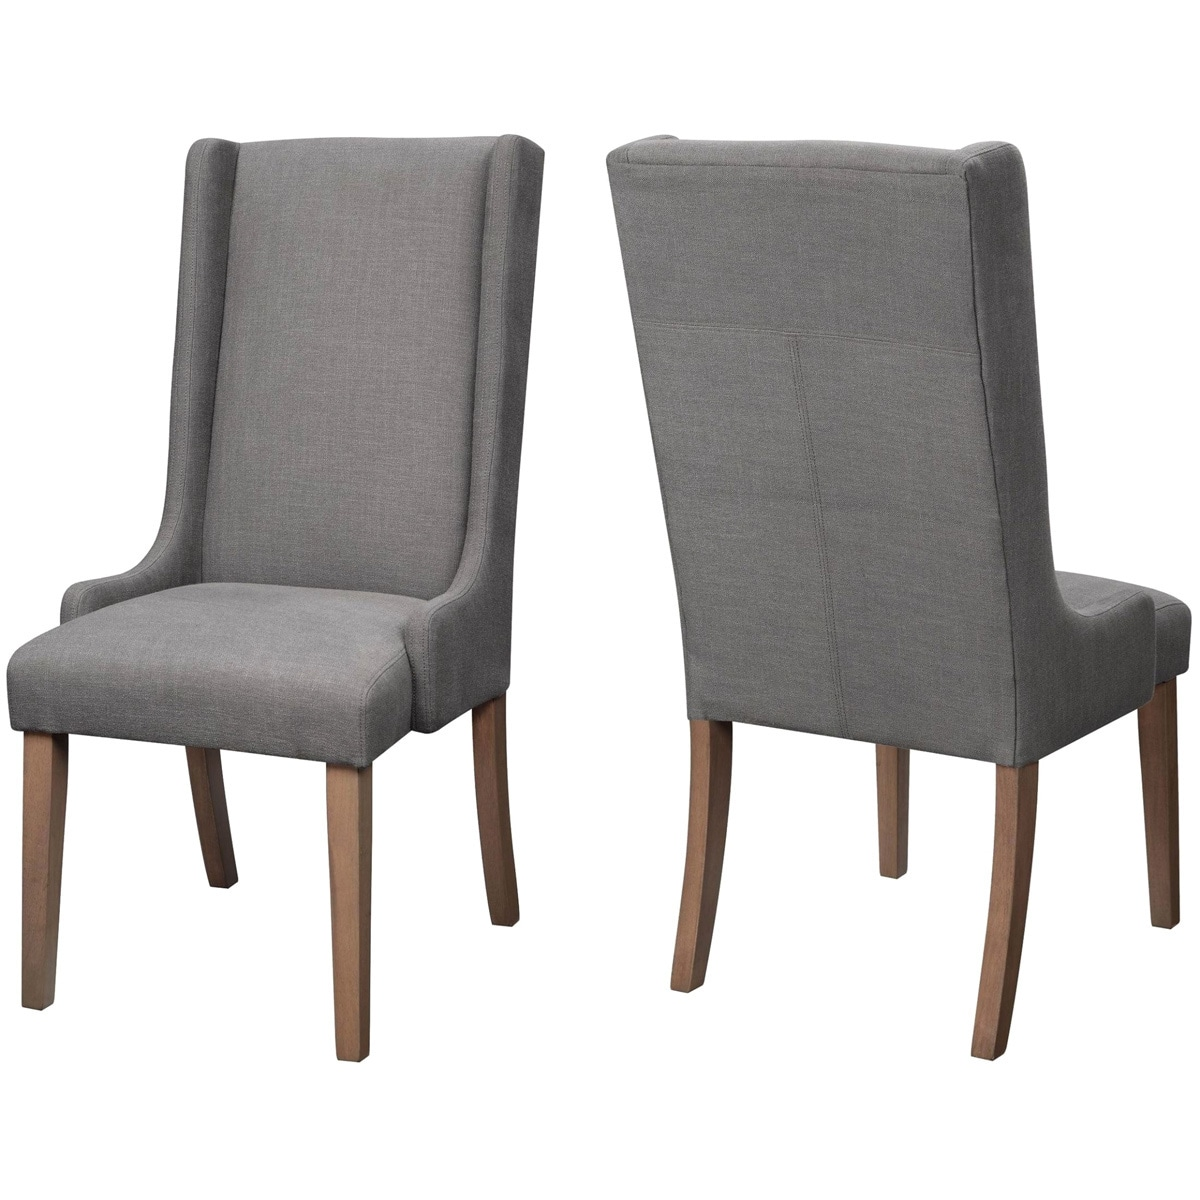 A Line Furniture Wing Back Design Dining Chairs (Set of 2)